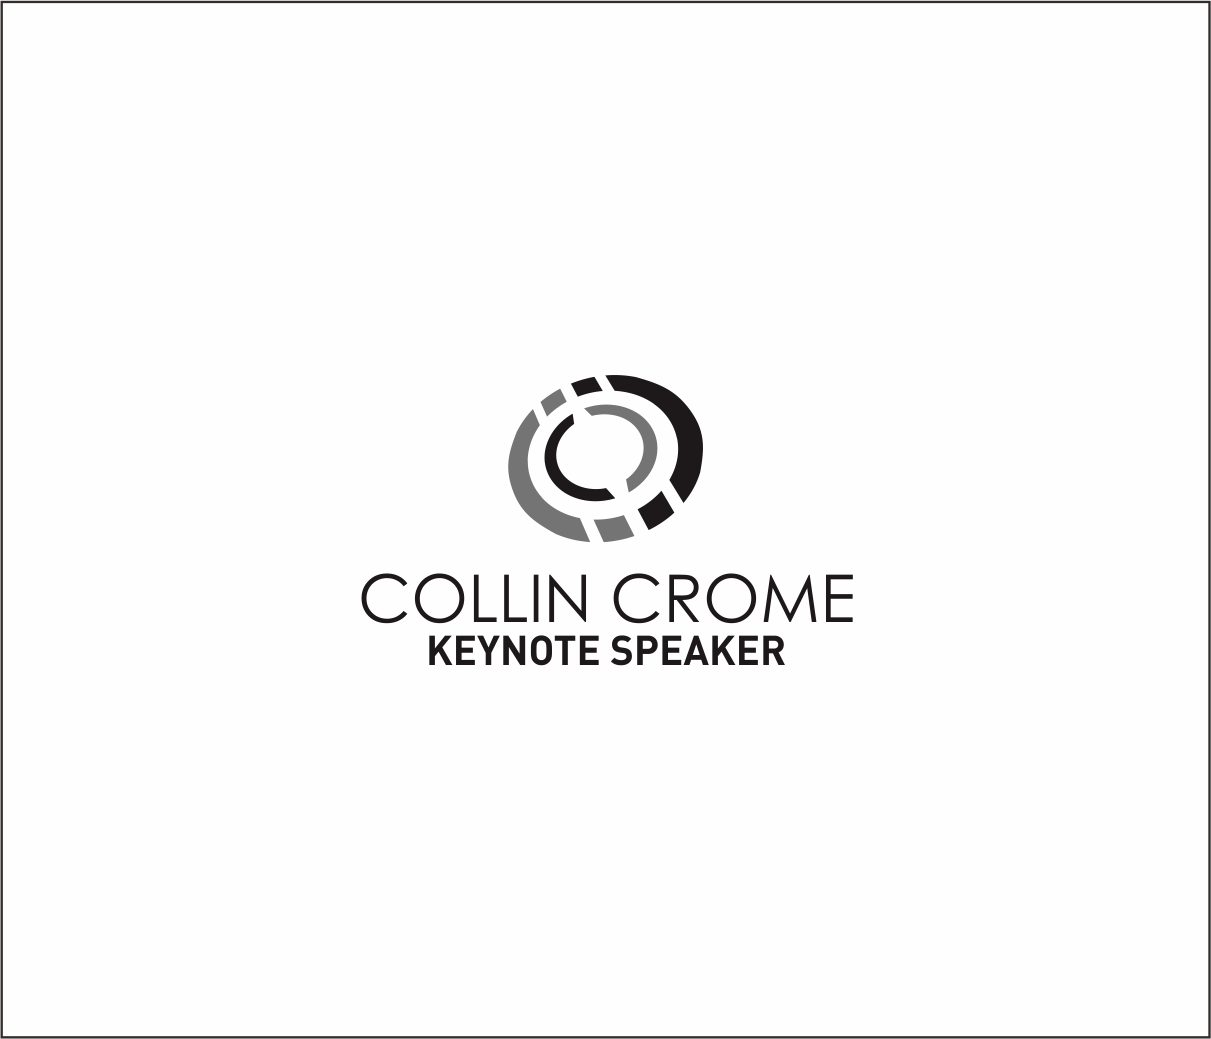 Logo Design by Armada Jamaluddin - Entry No. 117 in the Logo Design Contest Modern Logo Design for Collin Croome.